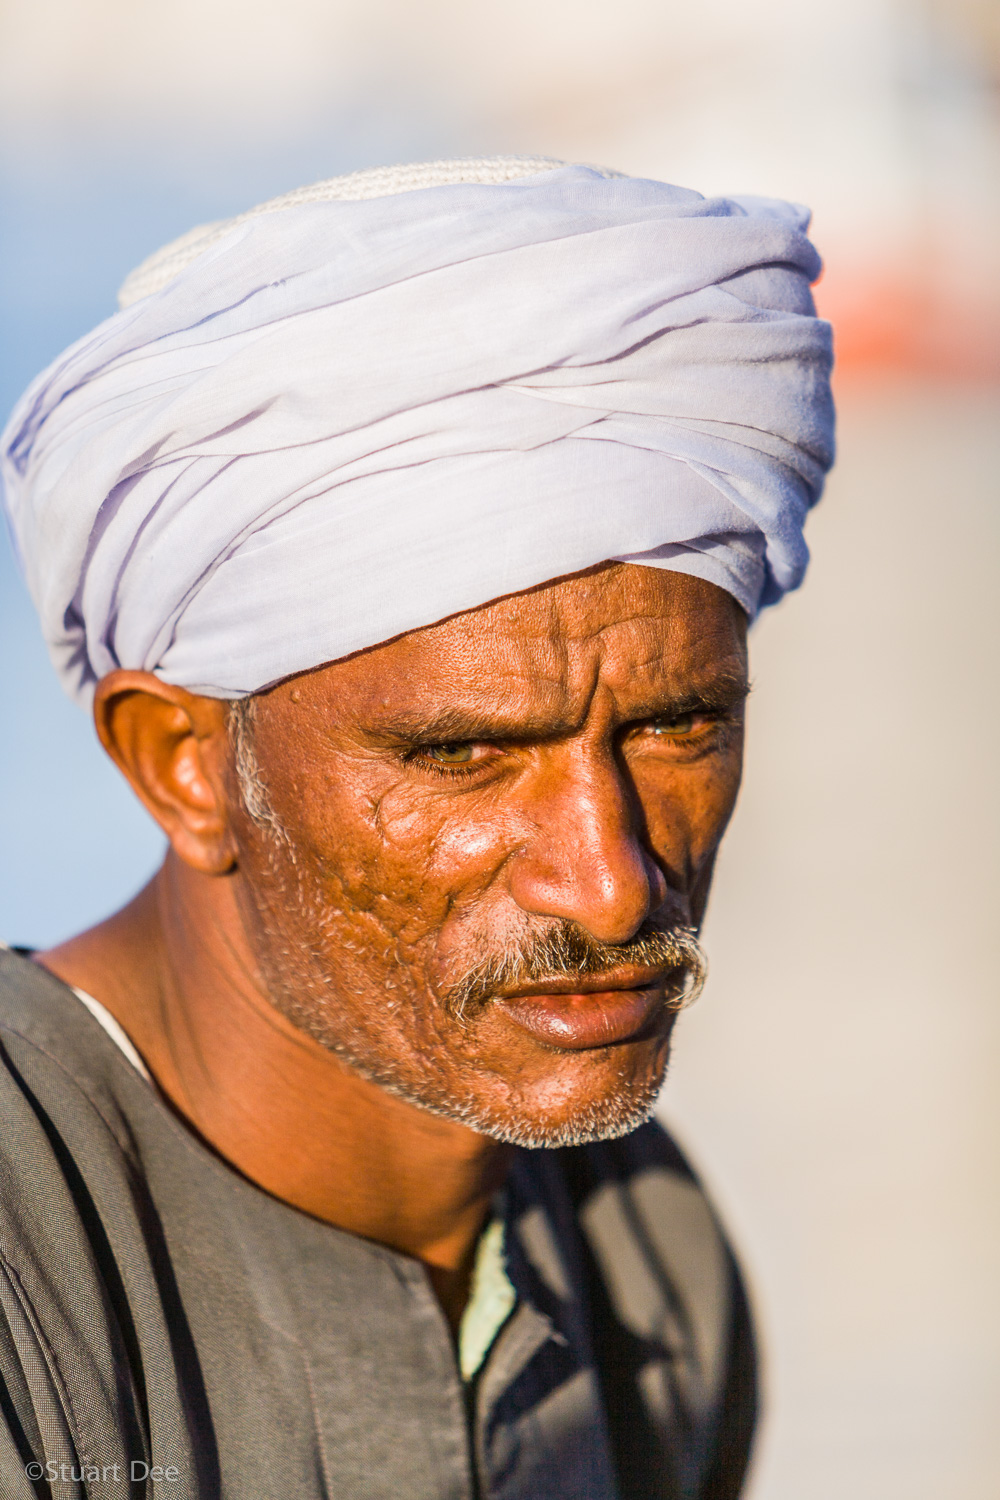 Portrait of boatman on a felucca, Nile River, Egypt